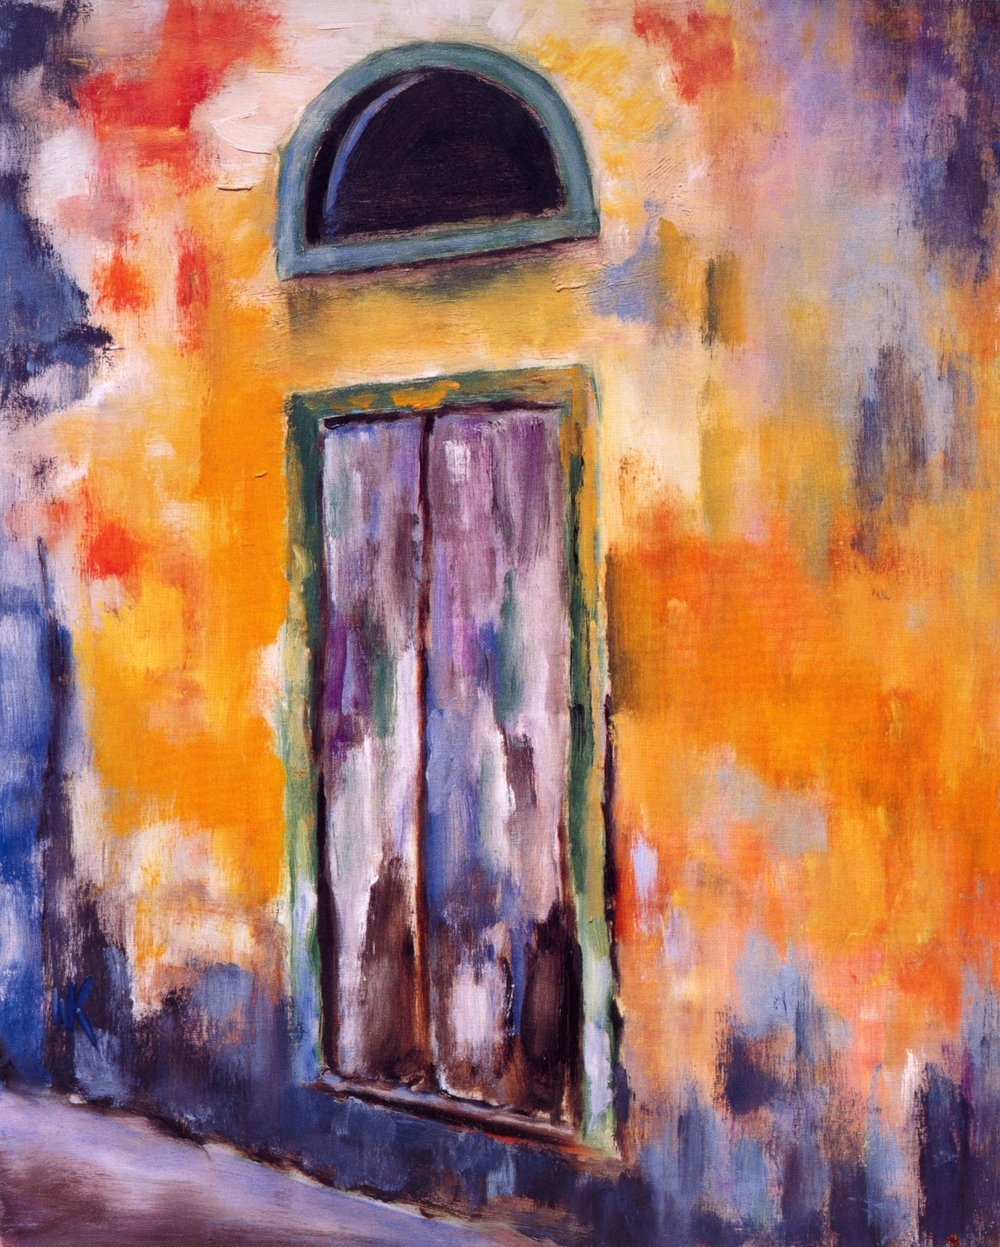 La Porta Radda In Chianti   Oil on canvas, 20'' x 24'', 2004